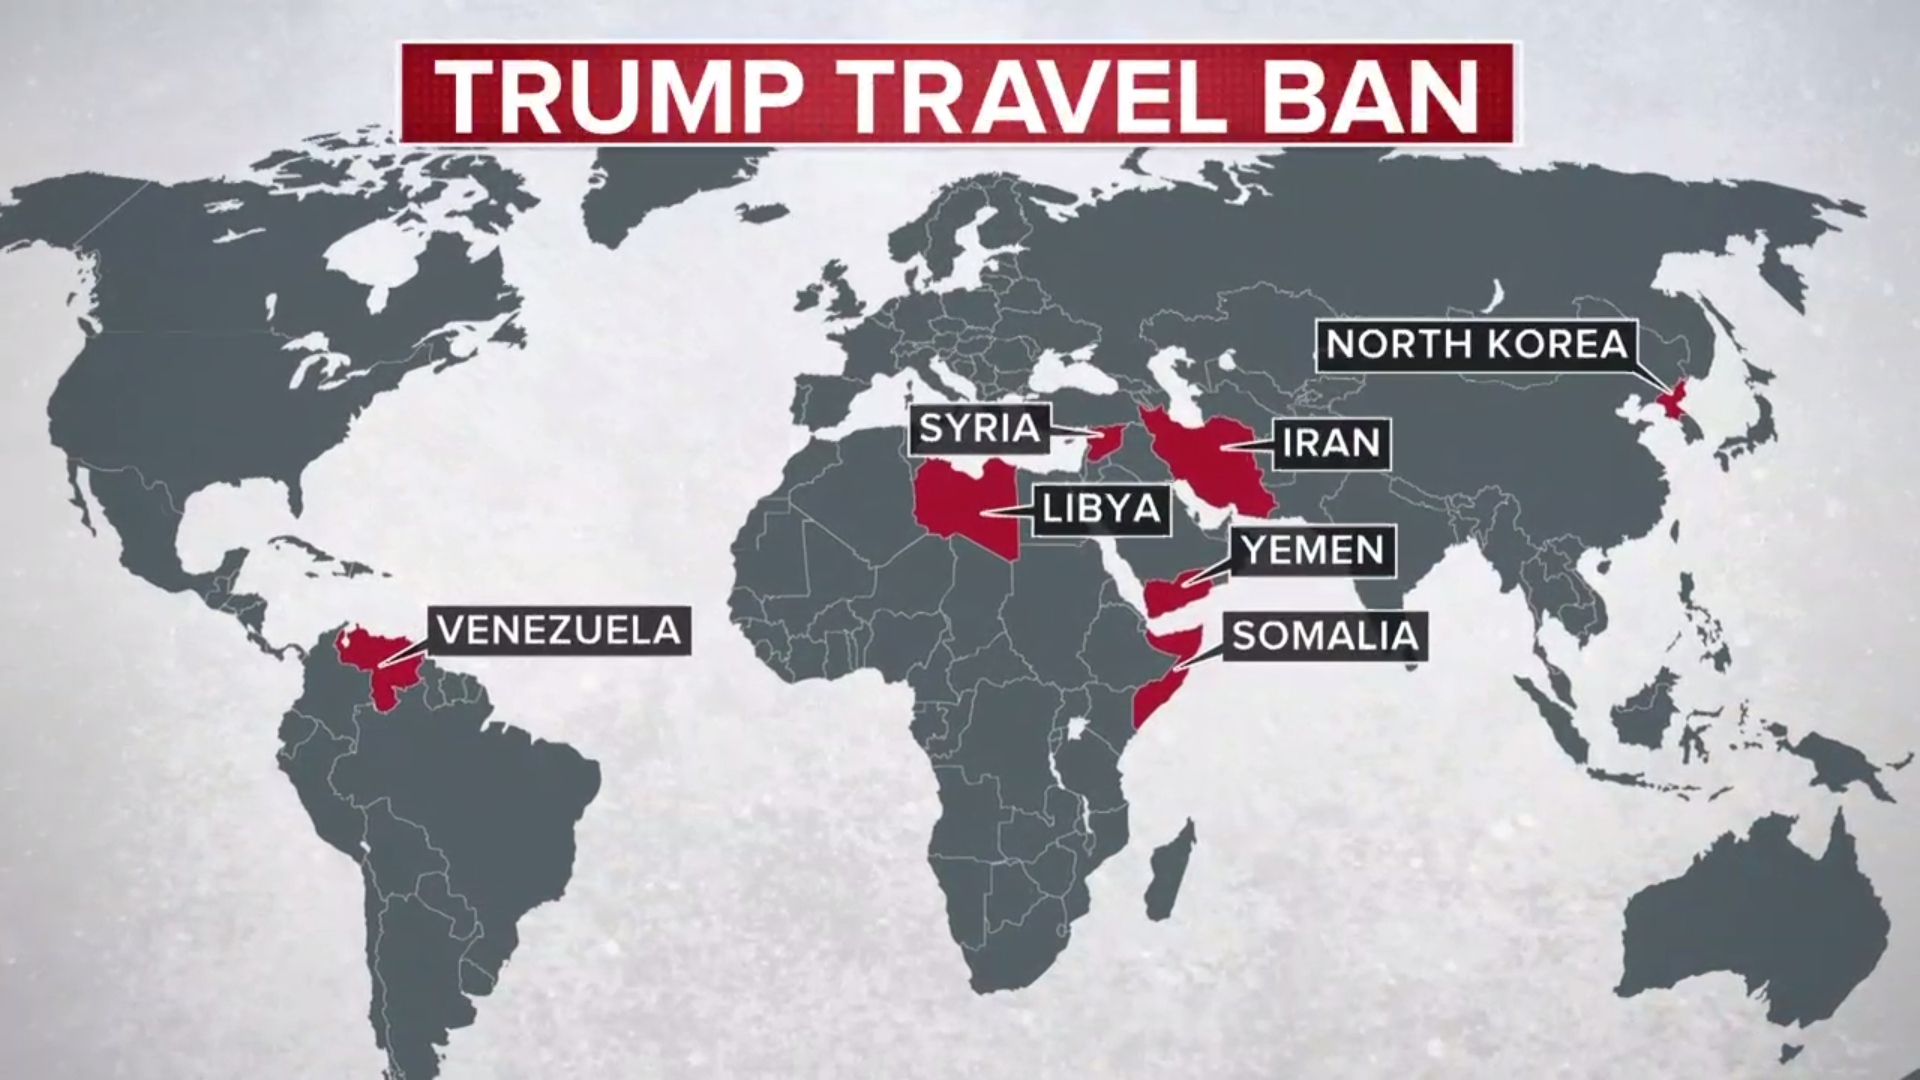 Travel ban upheld: Supreme Court decision today upholds Trump travel ...